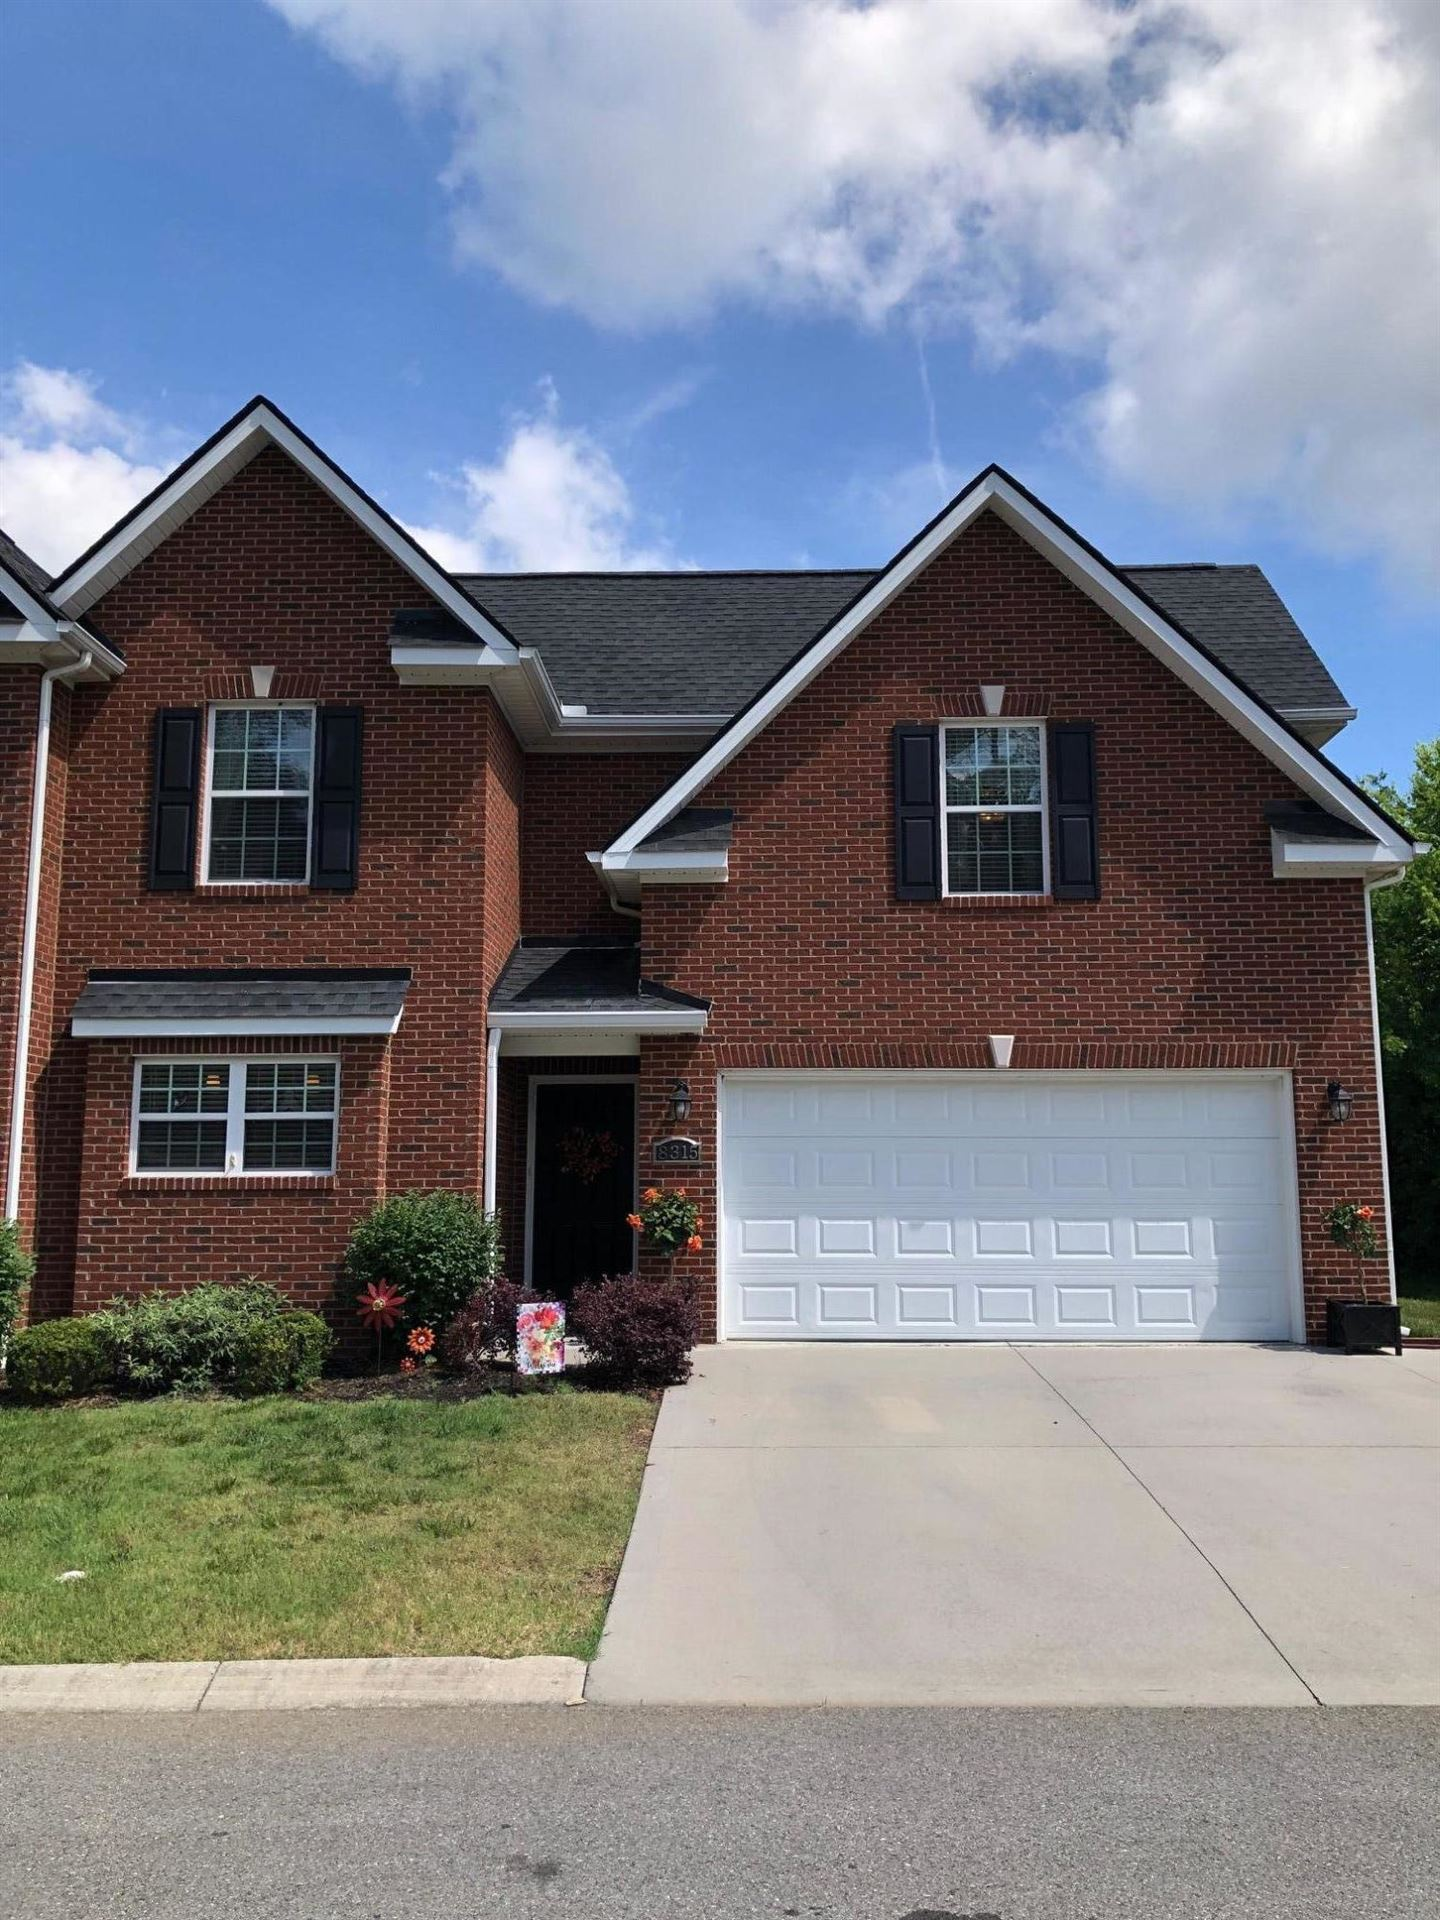 Photo of 8315 Tumbled Stone Way, Knoxville, TN 37931 (MLS # 1155487)